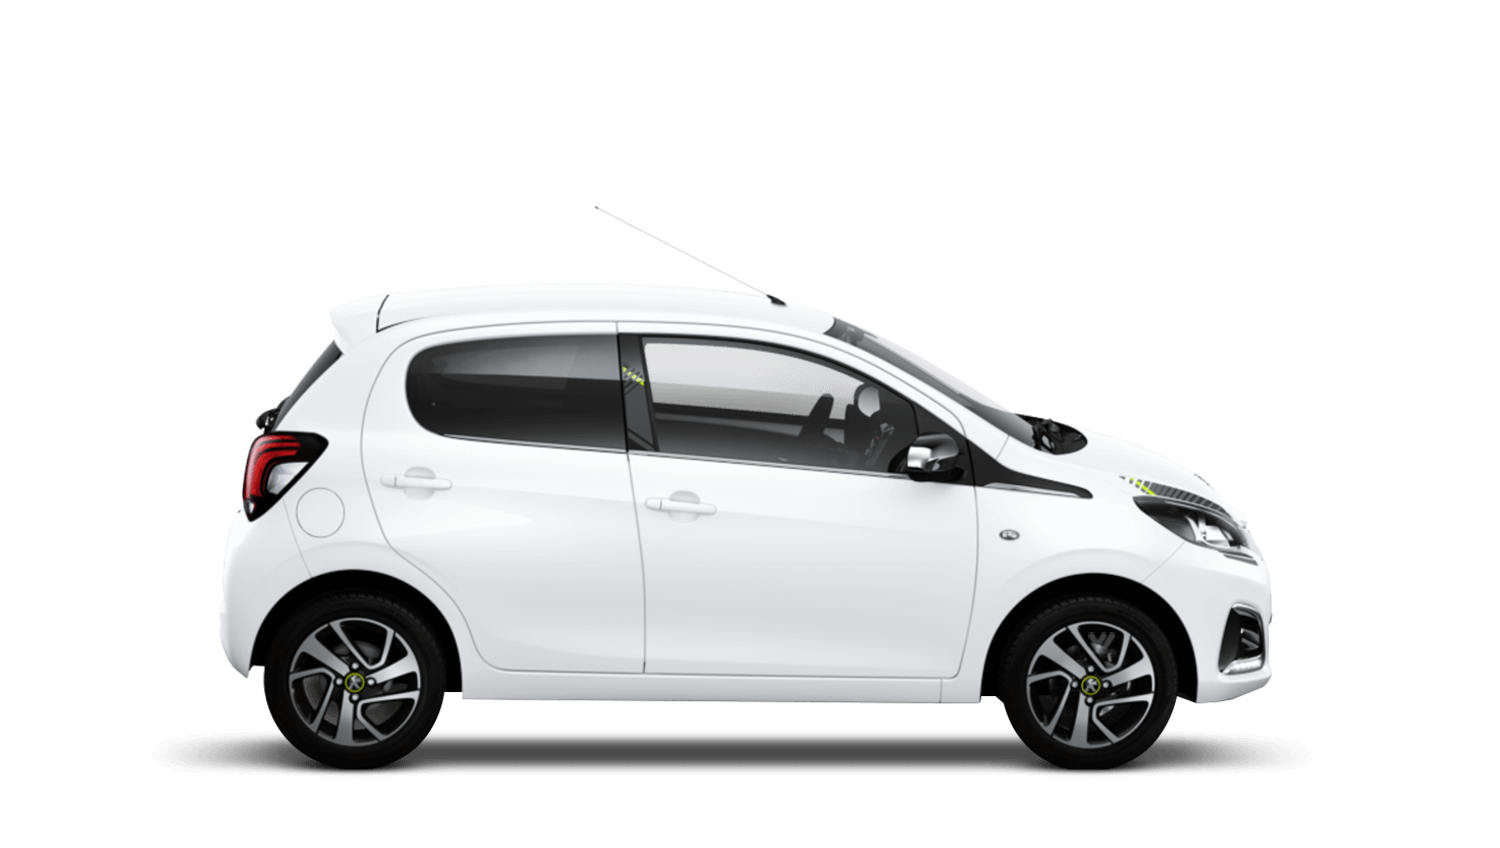 Diamond White Peugeot 108